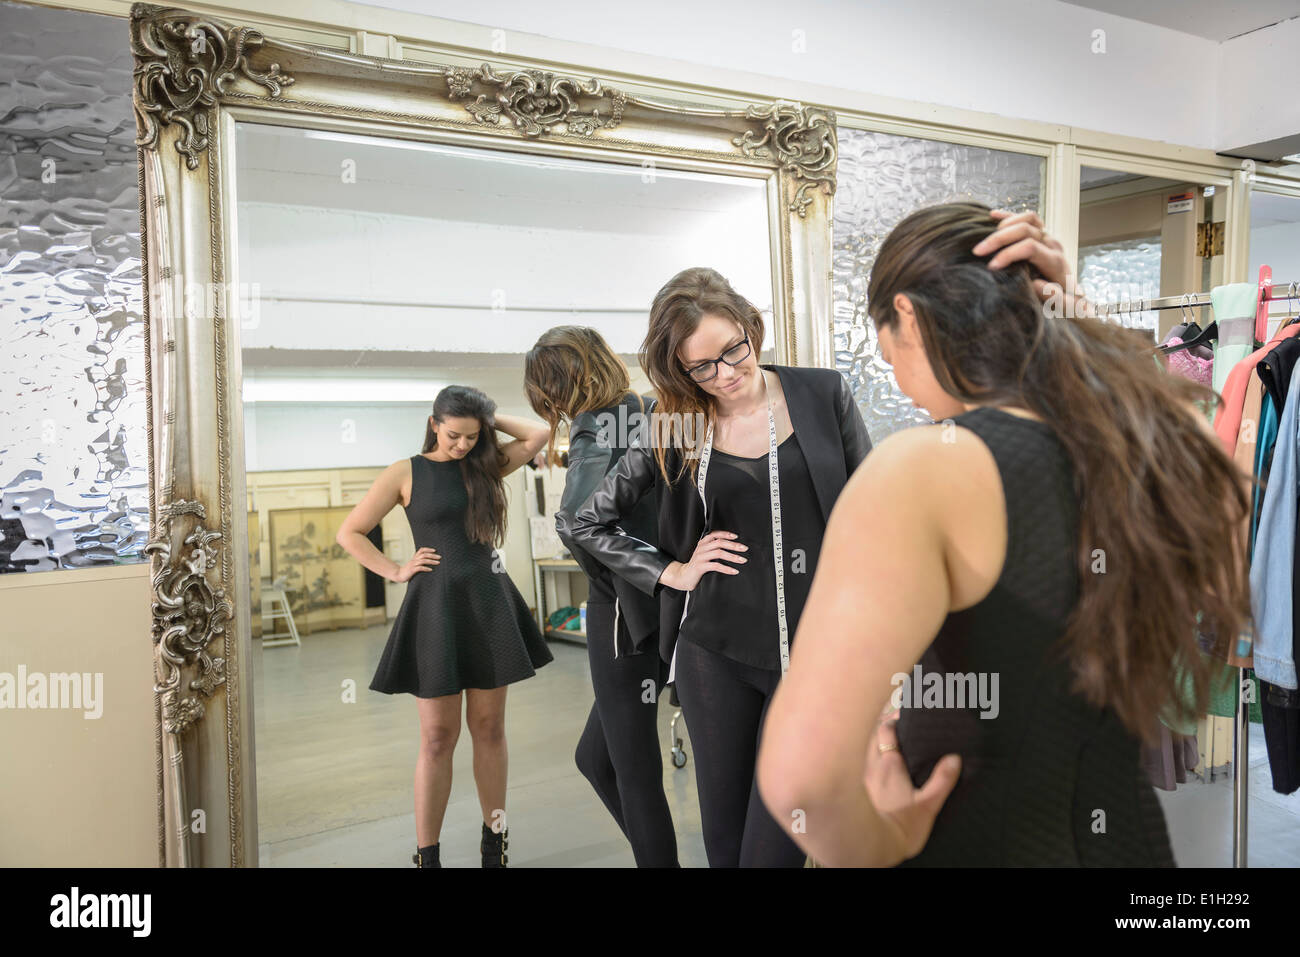 Fashion designers working together on dress in fashion studio - Stock Image